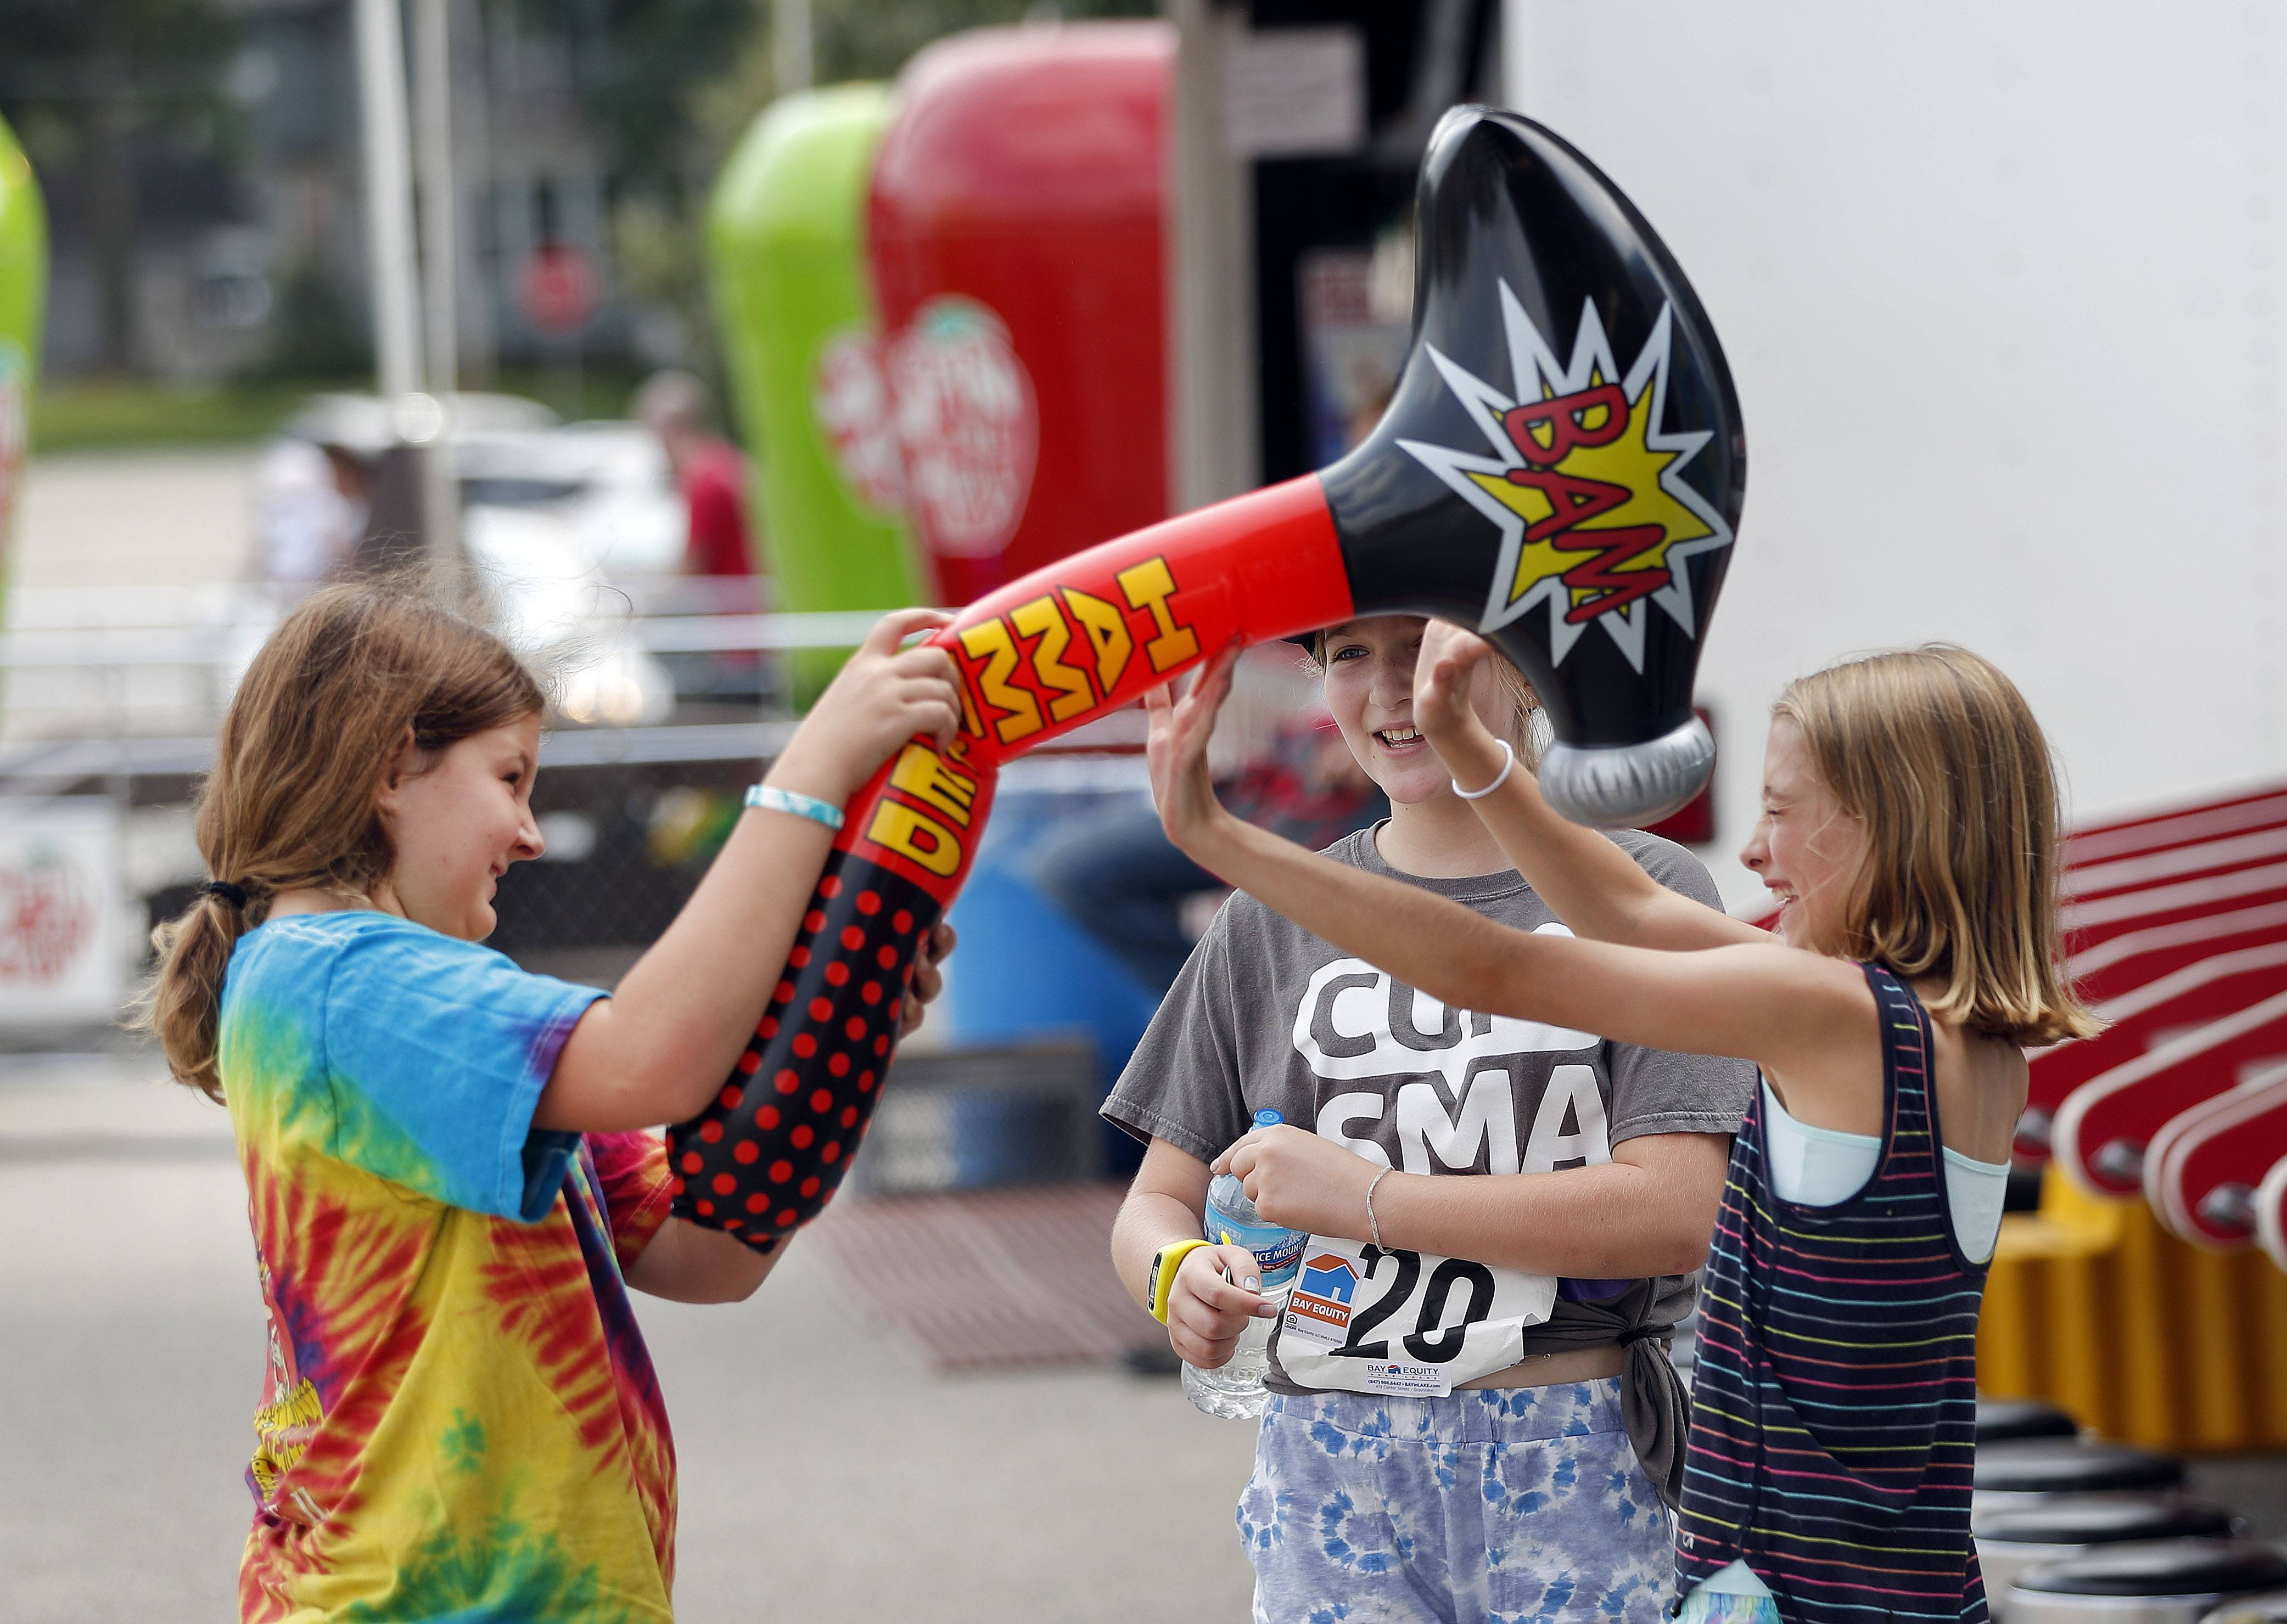 From left Taylor Schoenborn, Sofi Brown and Sydney Brown, all 10 and from Grayslake, play with a toy they won from a carnival game during the Grayslake Chamber of Commerce and Industry's Summer Days festival in downtown Grayslake Saturday.